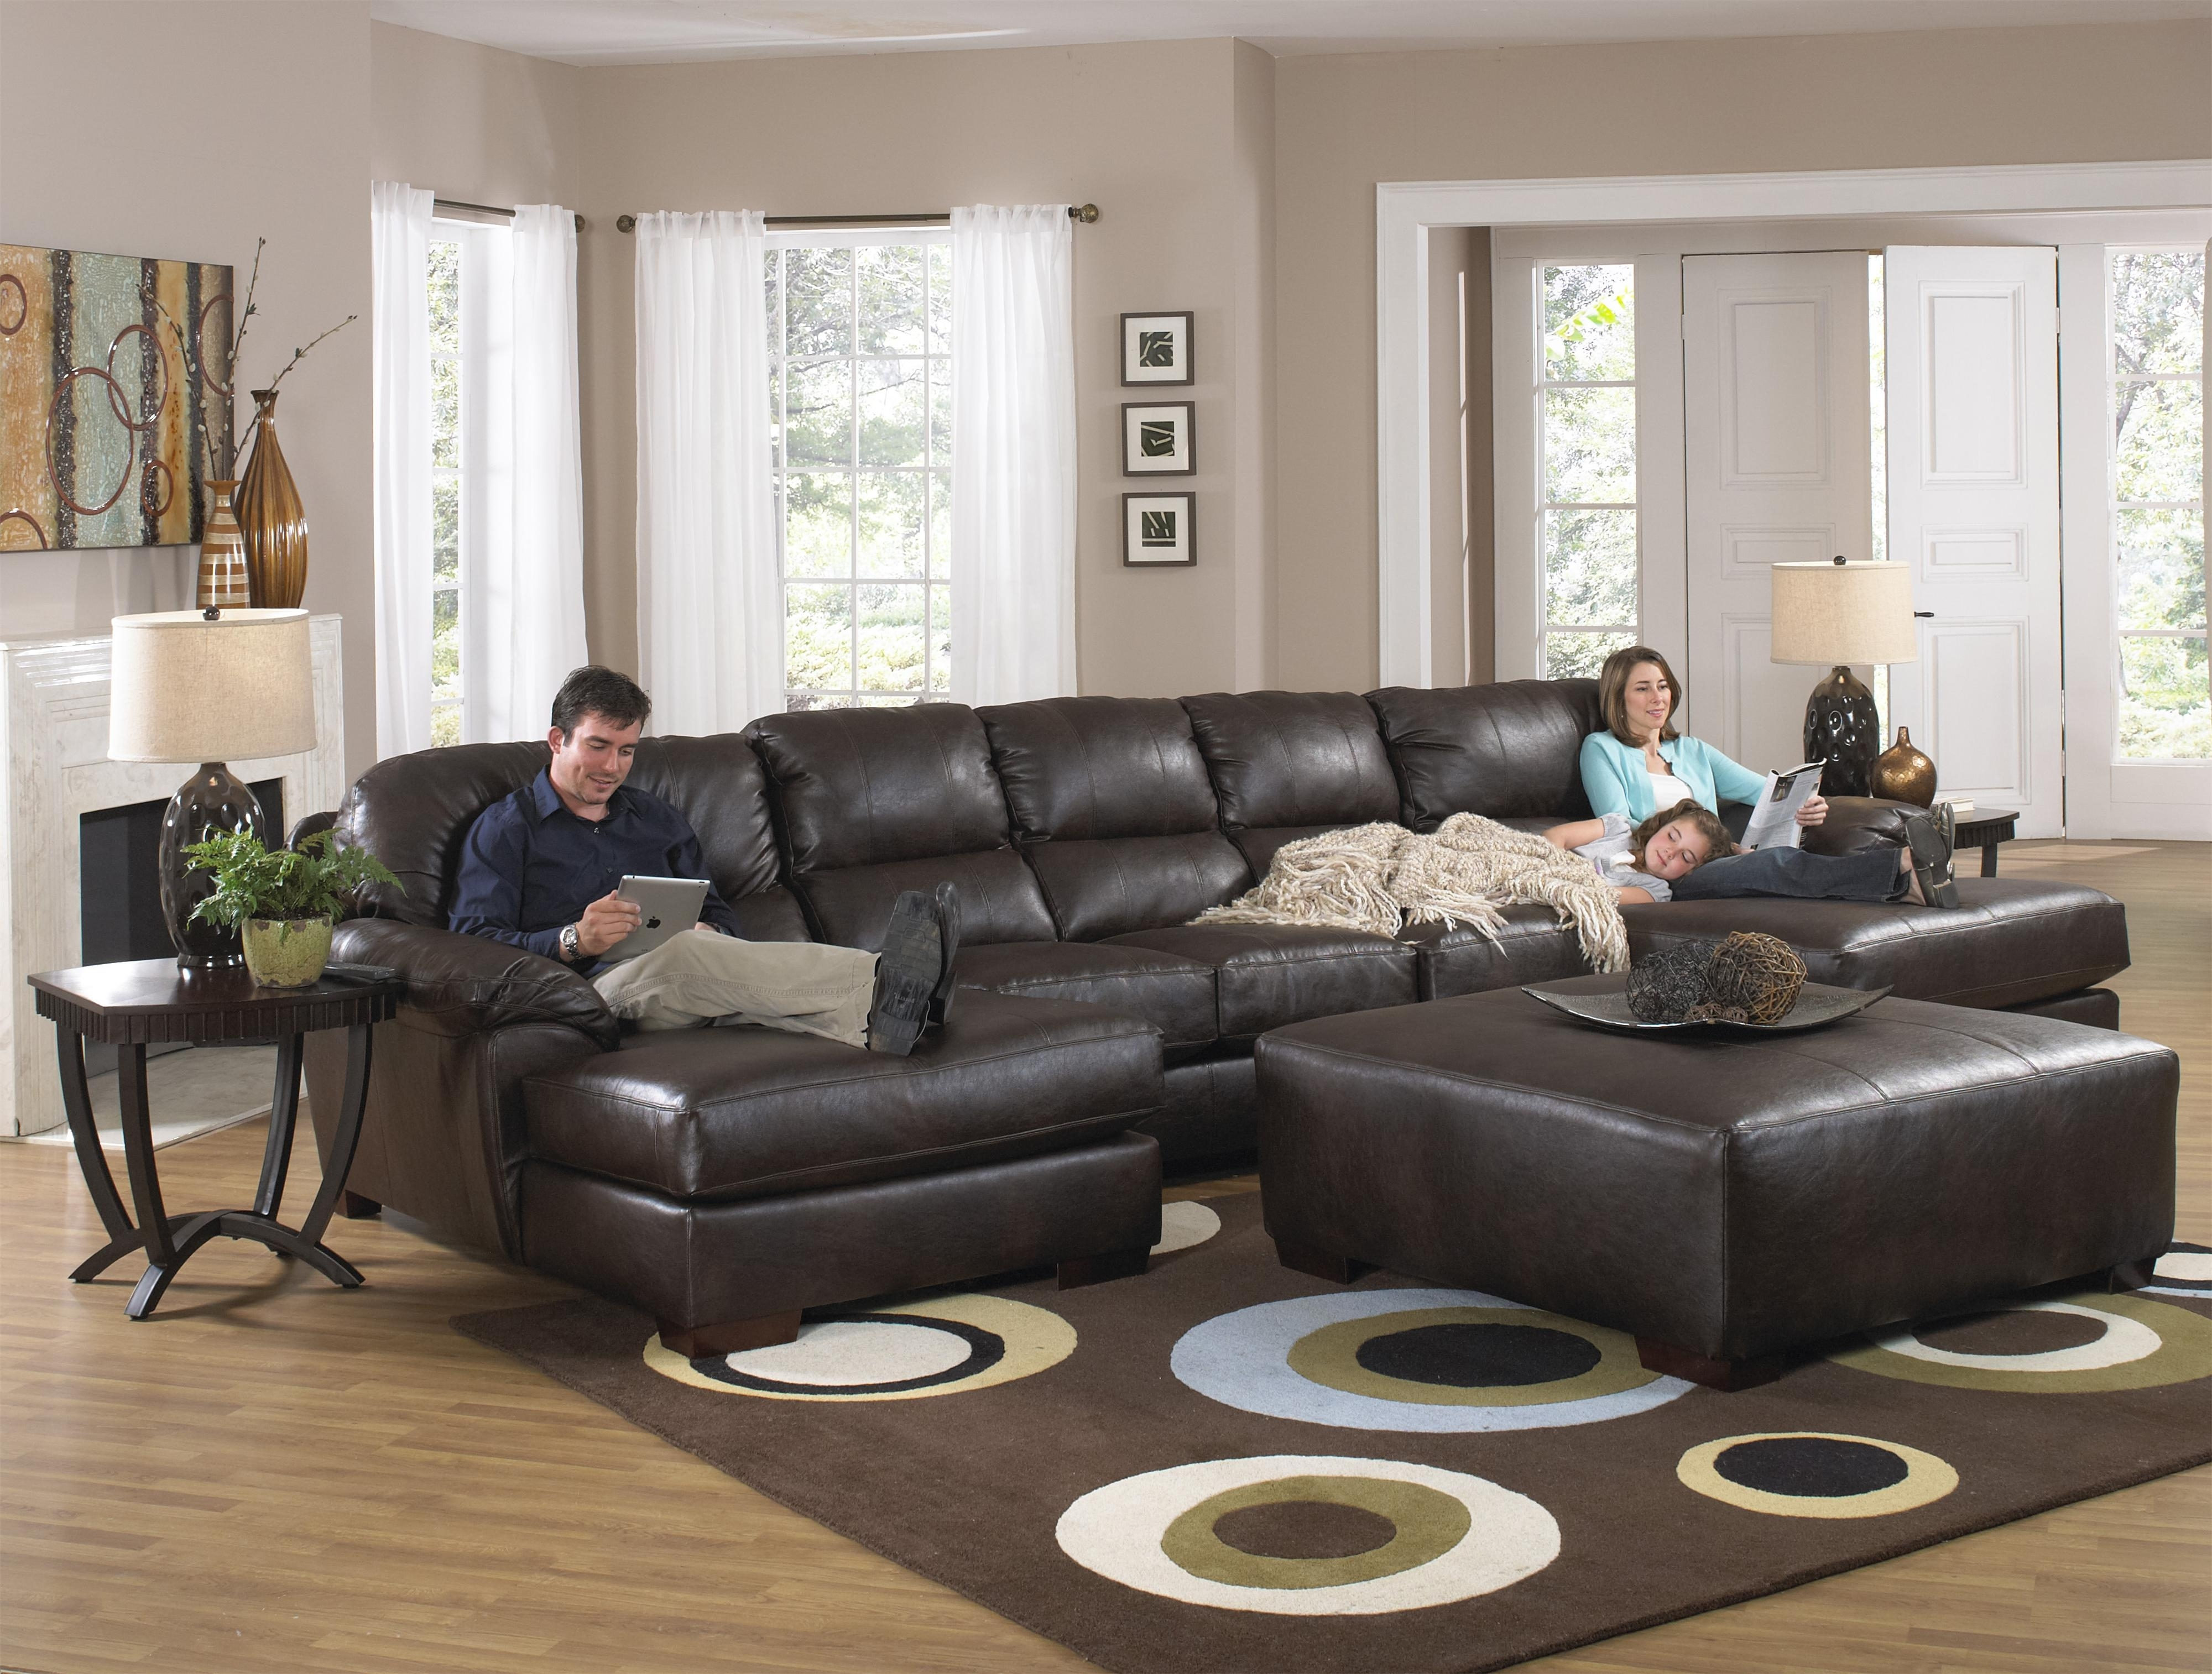 Ethan Allen Sectional Sofas Double Chaise Sectional U Shaped For Famous Double Chaise Couches (View 6 of 15)